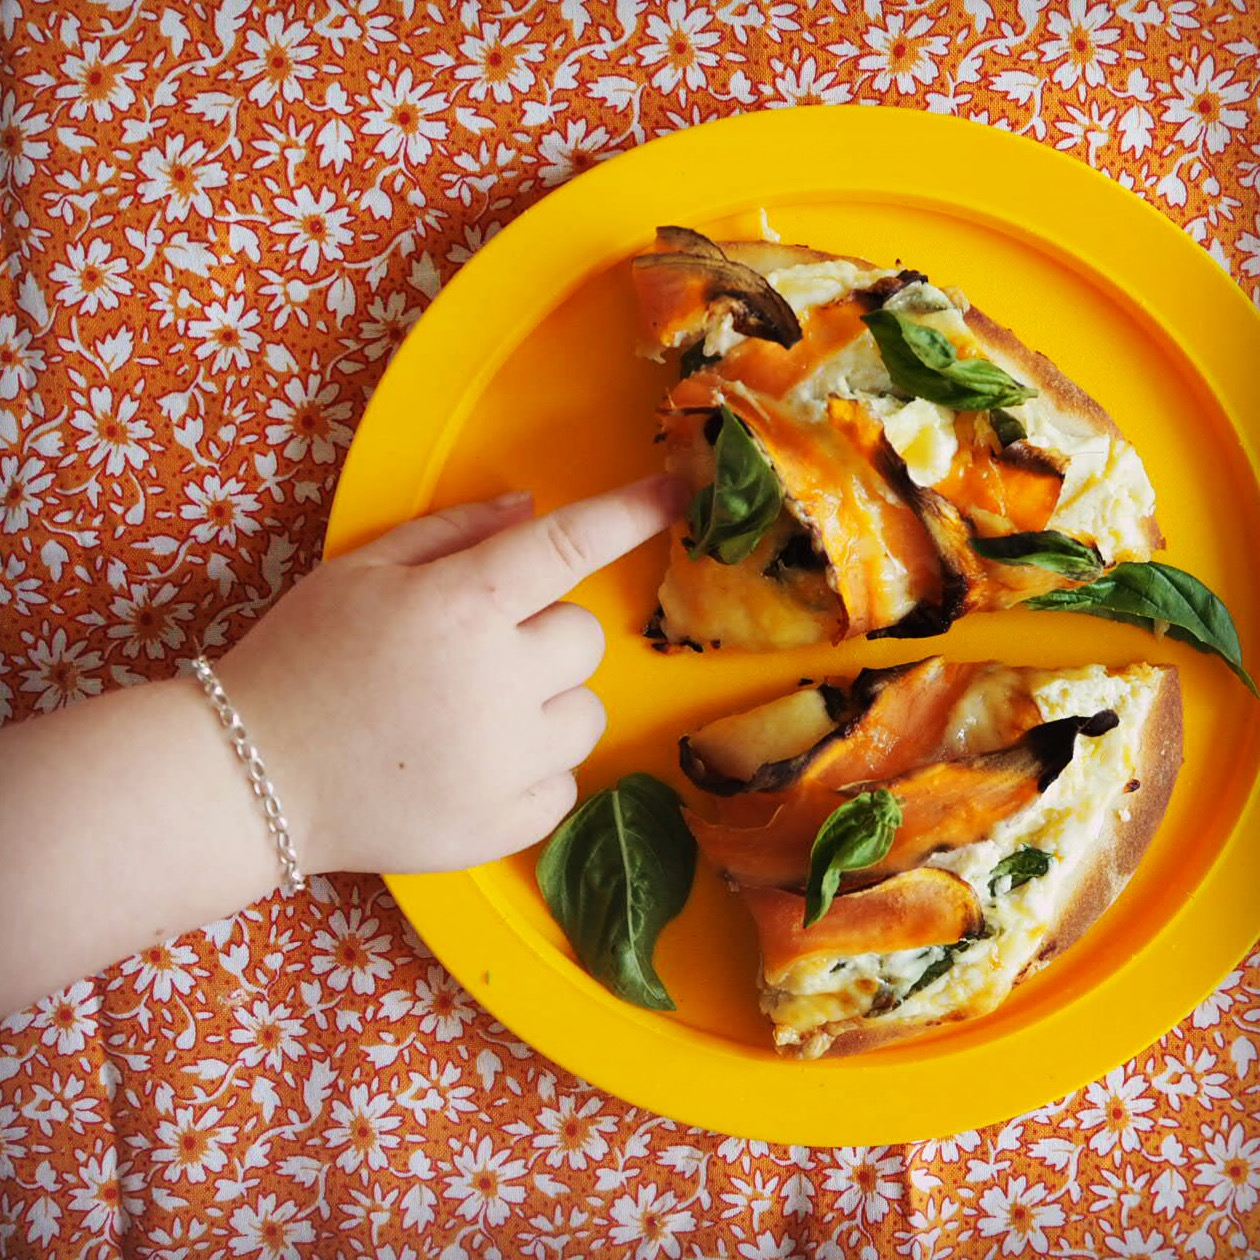 ricotta & sweet potato pizza - my lovely little lunch box